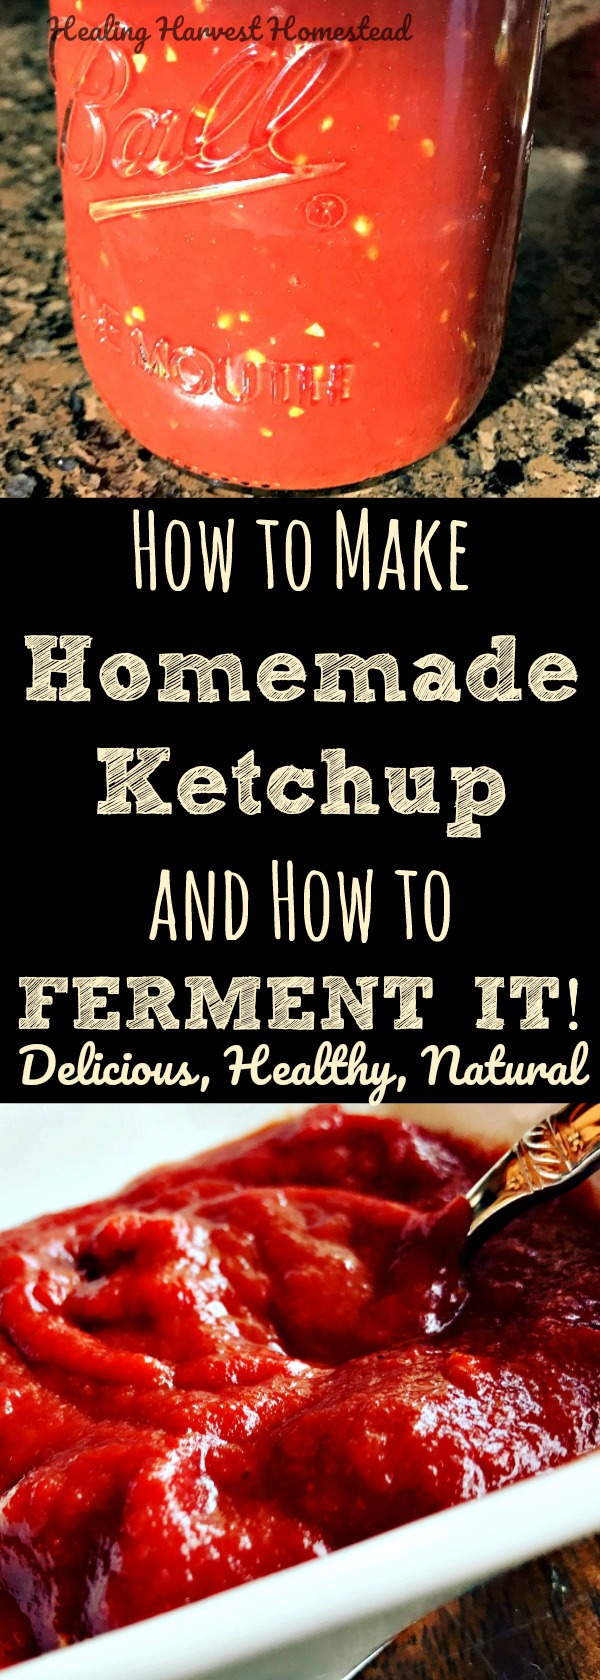 Are you tired of buying processed ketchup? I know we were, so we started a campaign in our family to make things our selves! It's EASY! It's HEALTHIER! And, guess what? You can ferment to make the foods even healthier and last longer. Here is my recipe for homemade ketchup and how to ferment that homemade ketchup too! Enjoy!